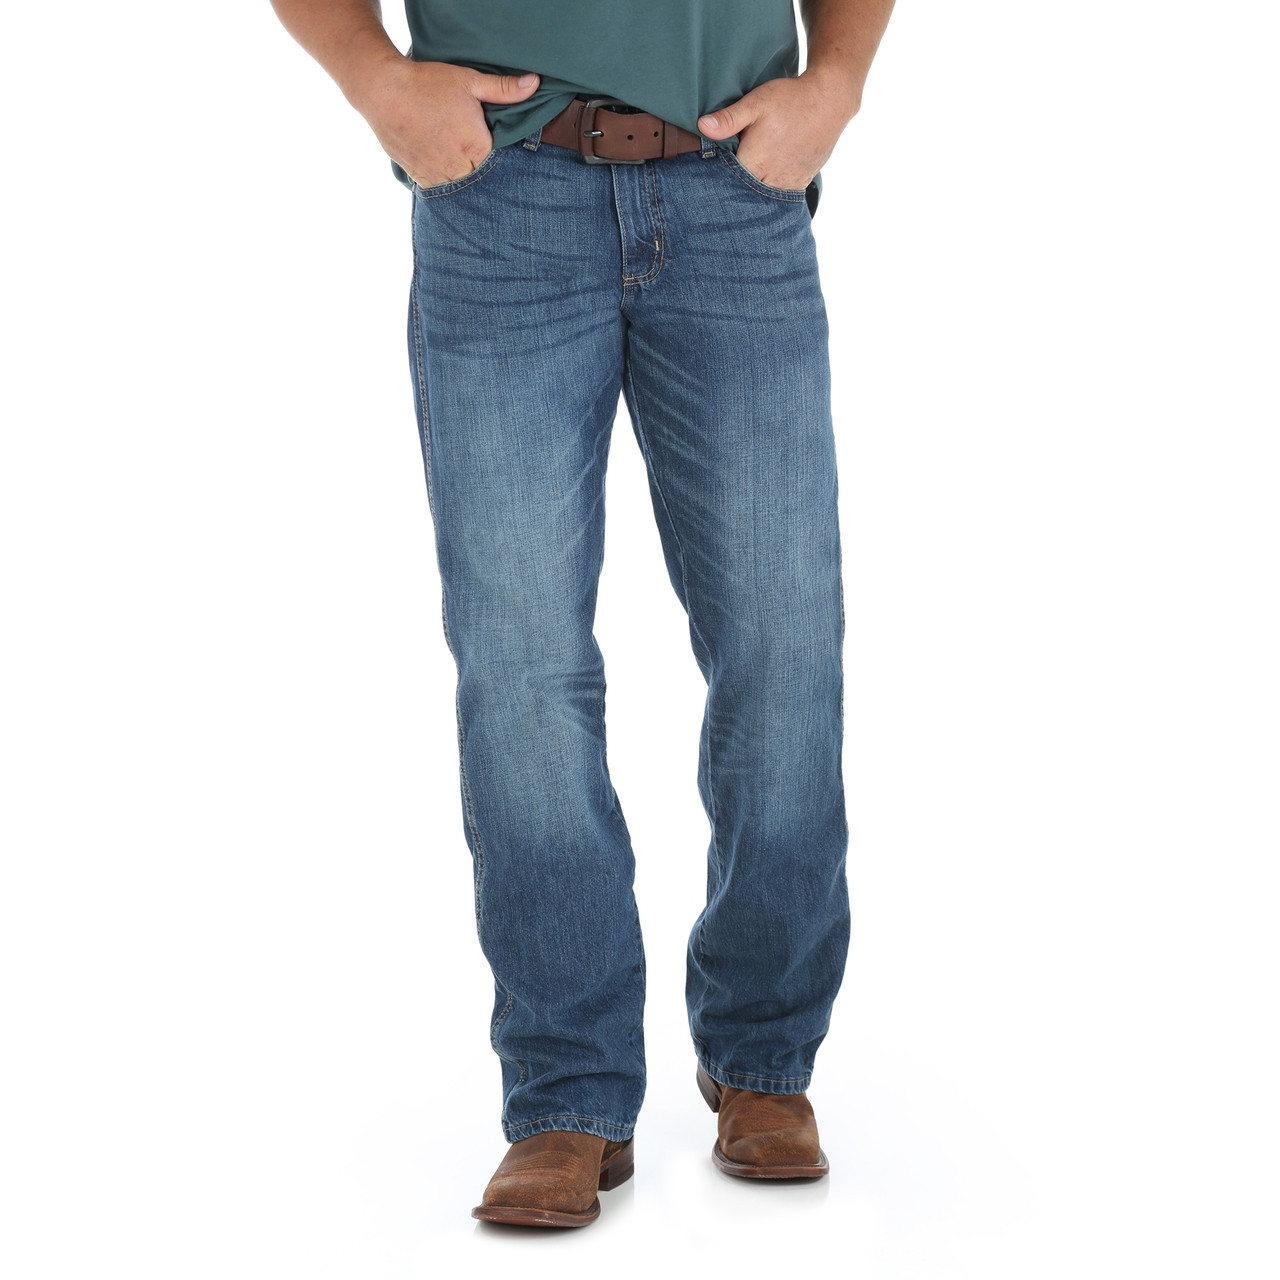 5bf68615 WRT20TB Wrangler Men's Retro Relaxed-Fit Bootcut Jean True Blue - Brantleys  Western & Casual Wear